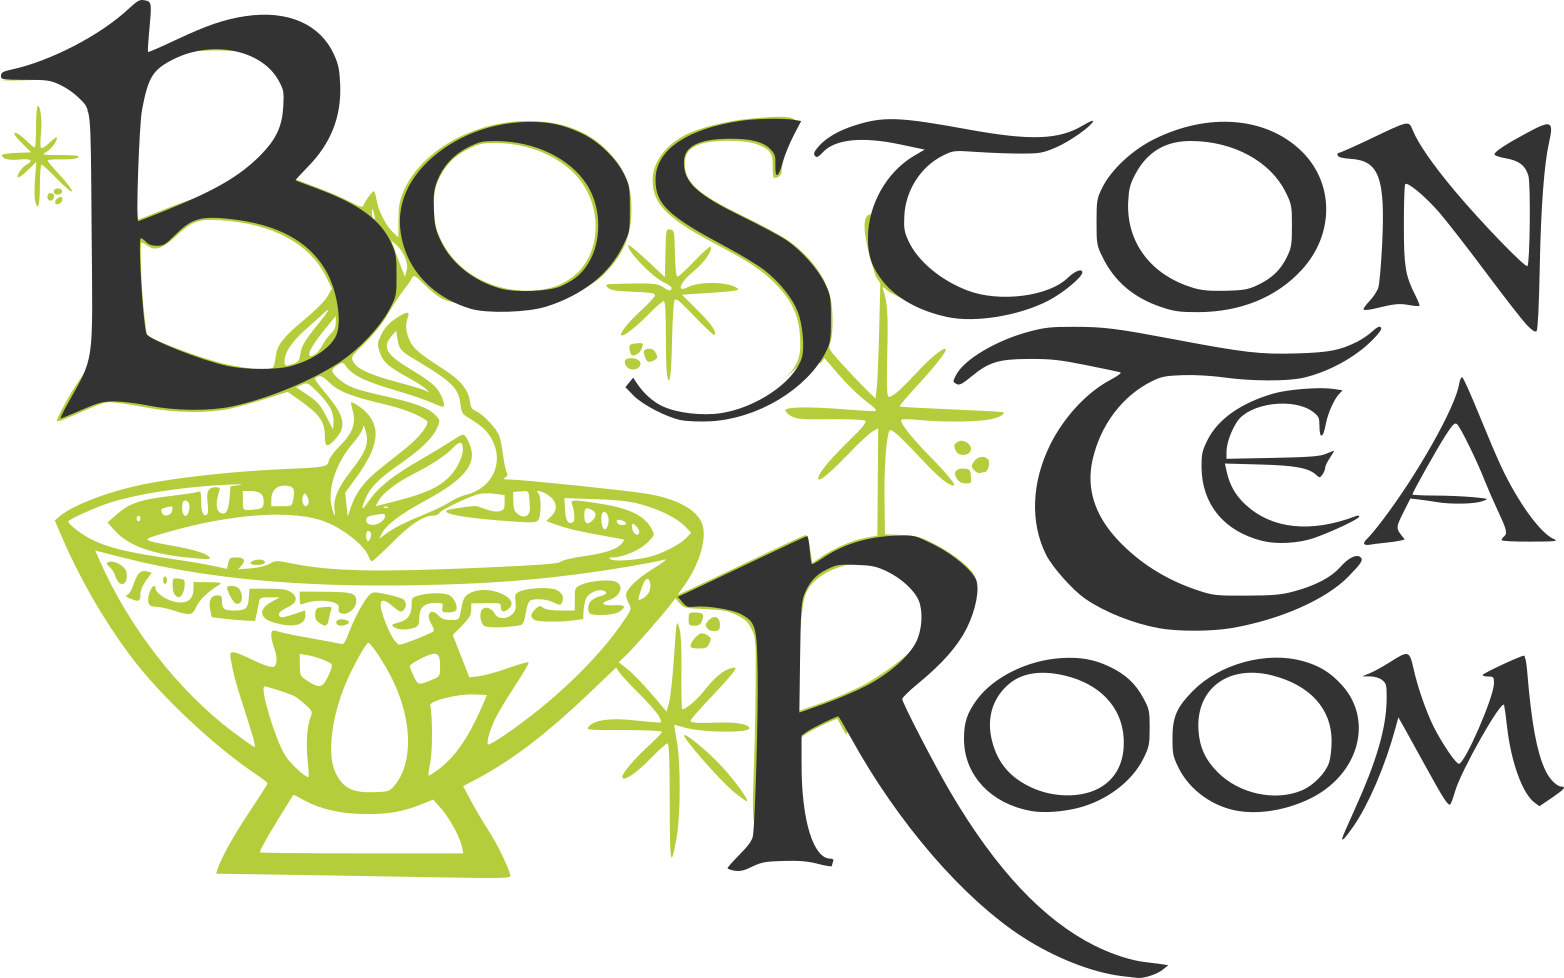 boston_tea_room_logo